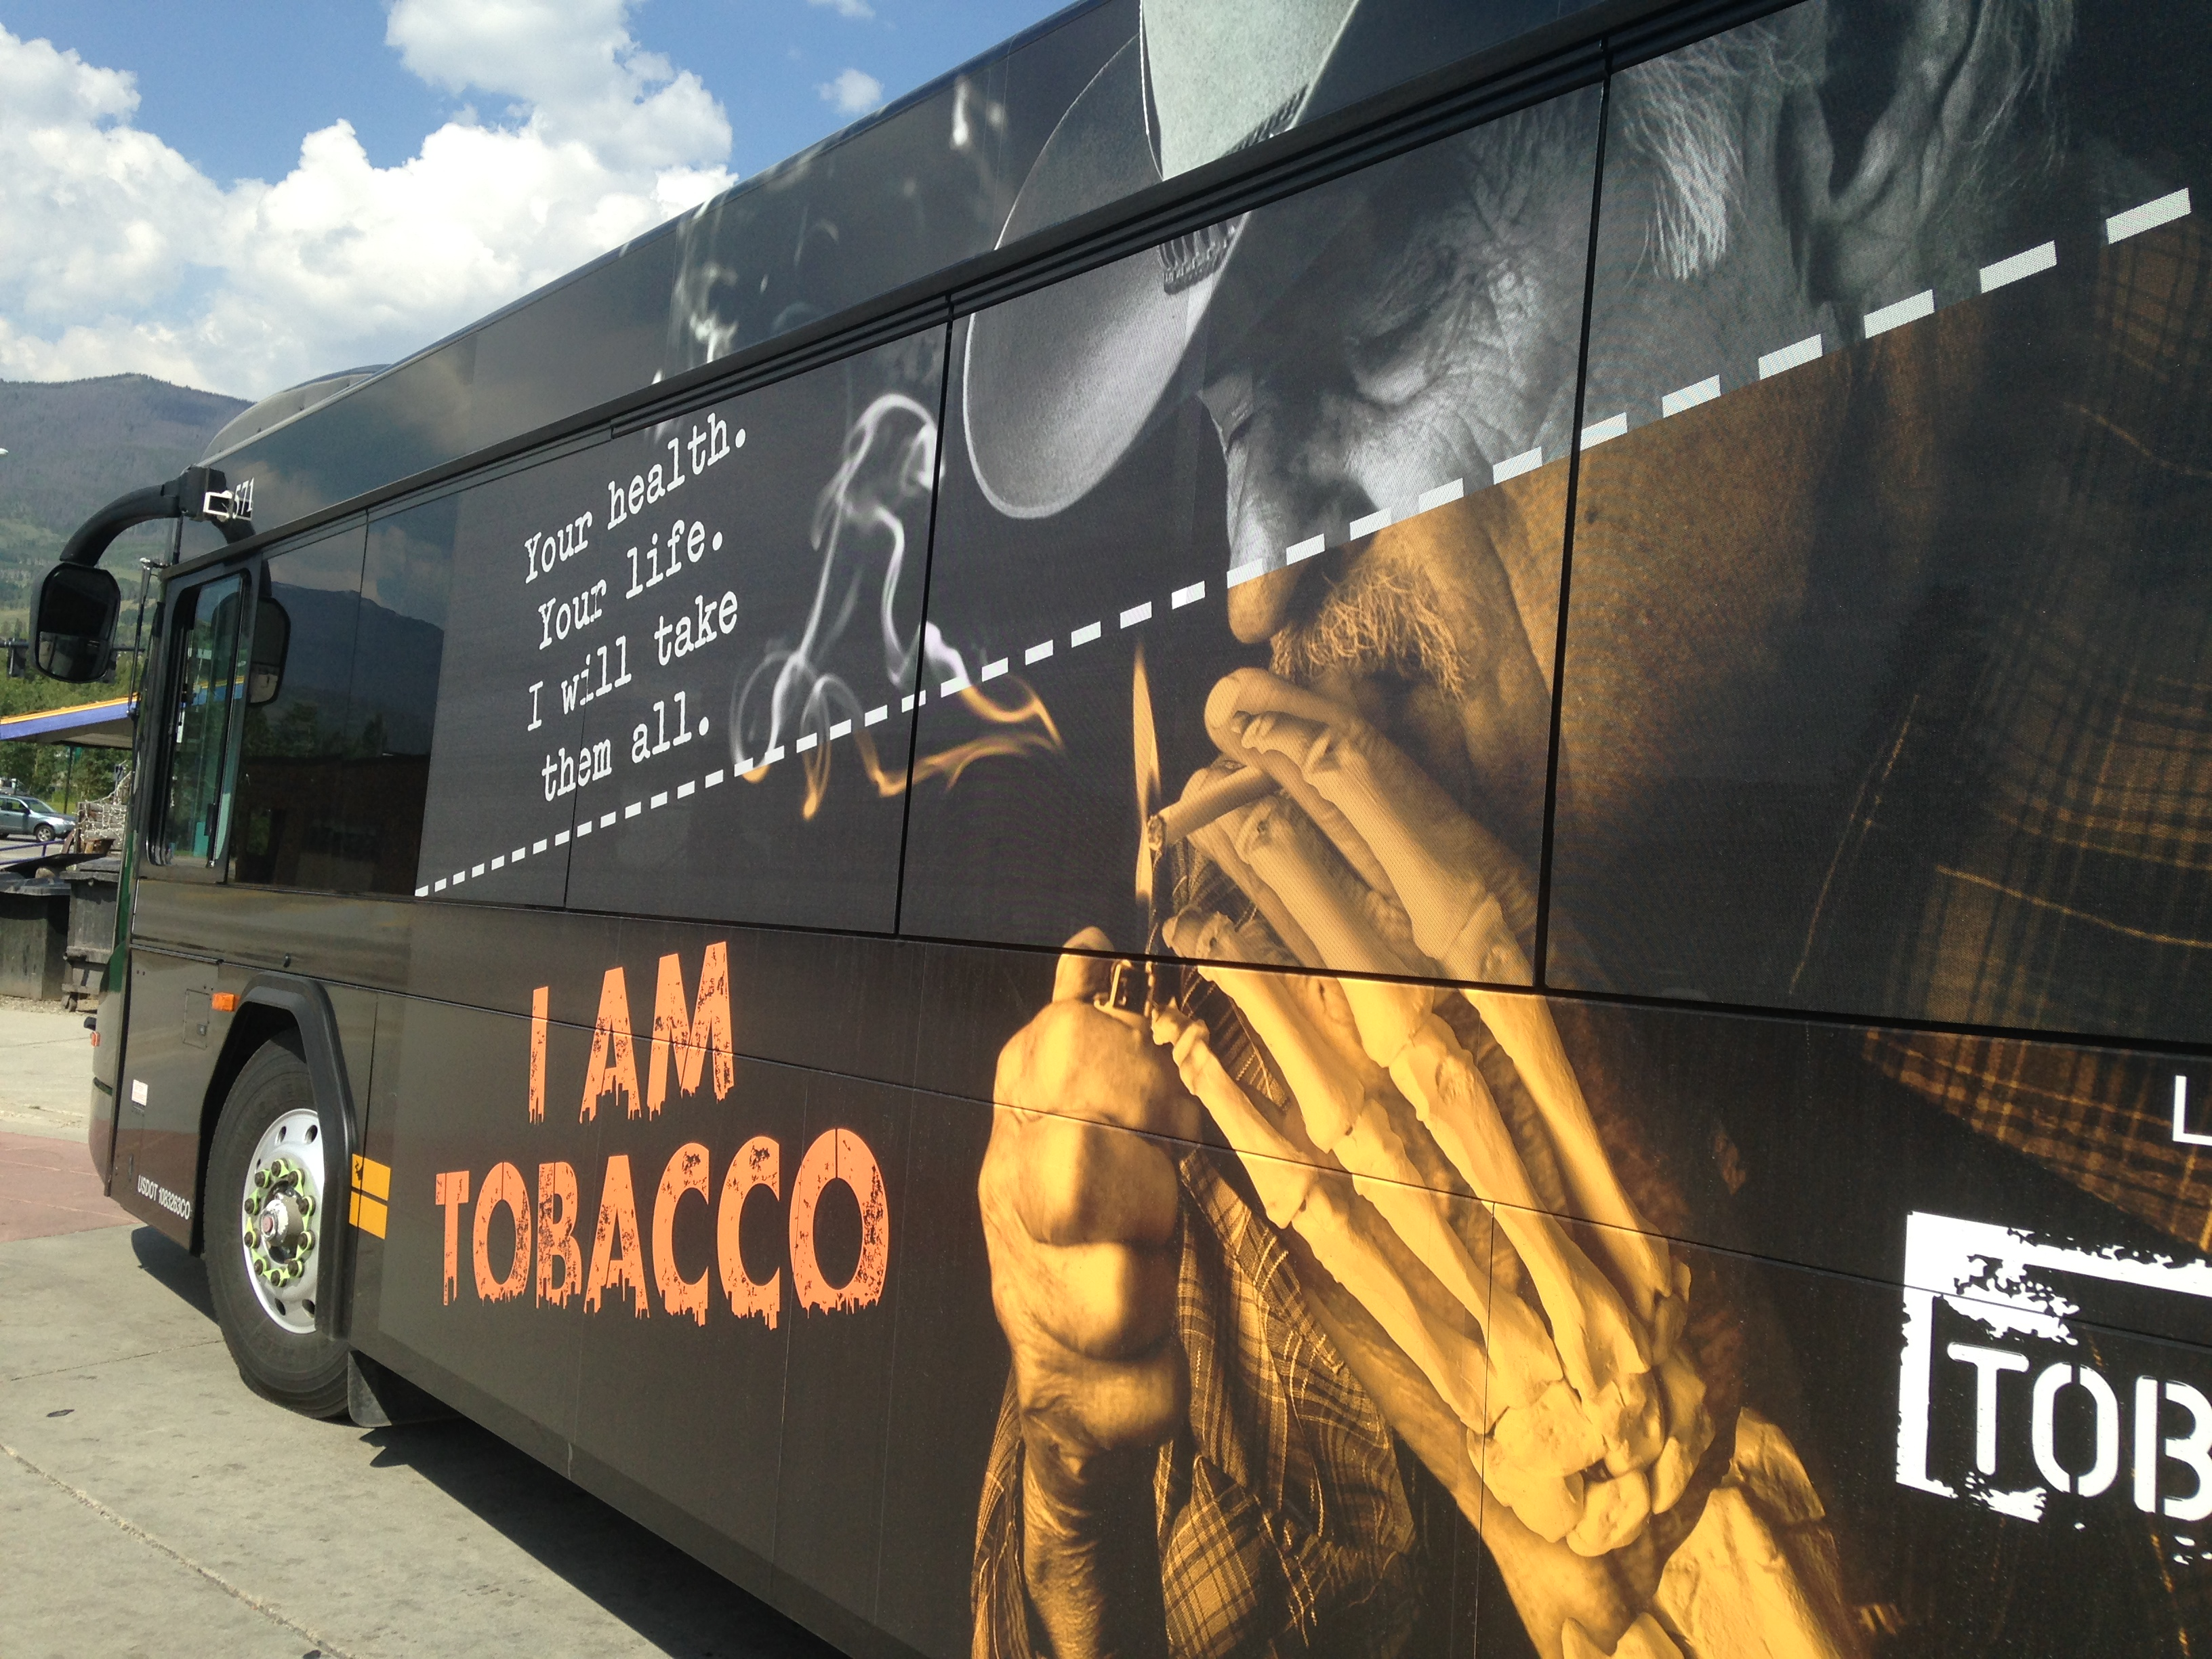 Photo of a bus with an anti-tobacco ad on the side